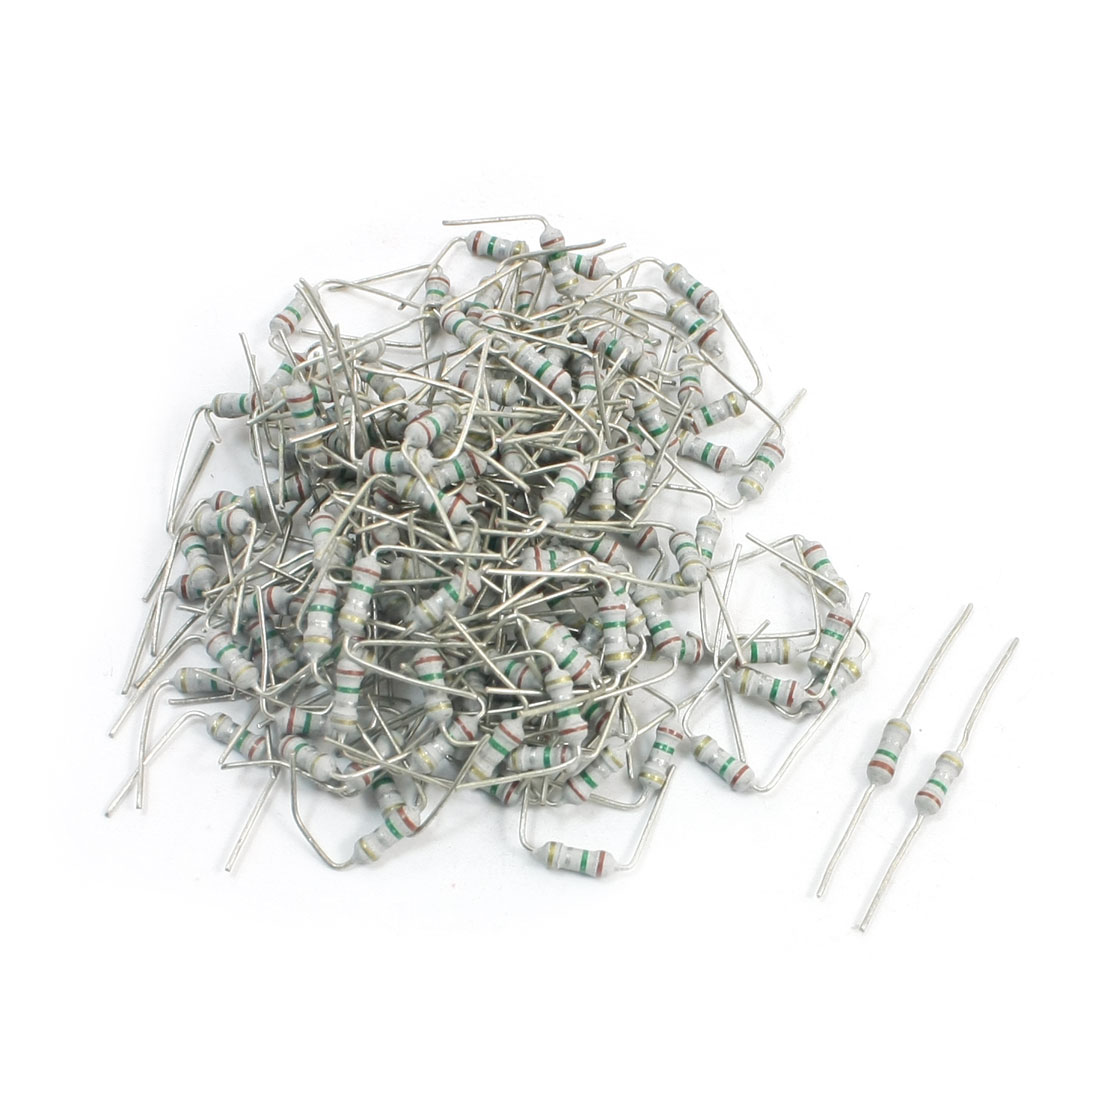 150Pcs 0.15 Ohm 1/4W 5% Tolerance Through Hole Carbon Film Resistors